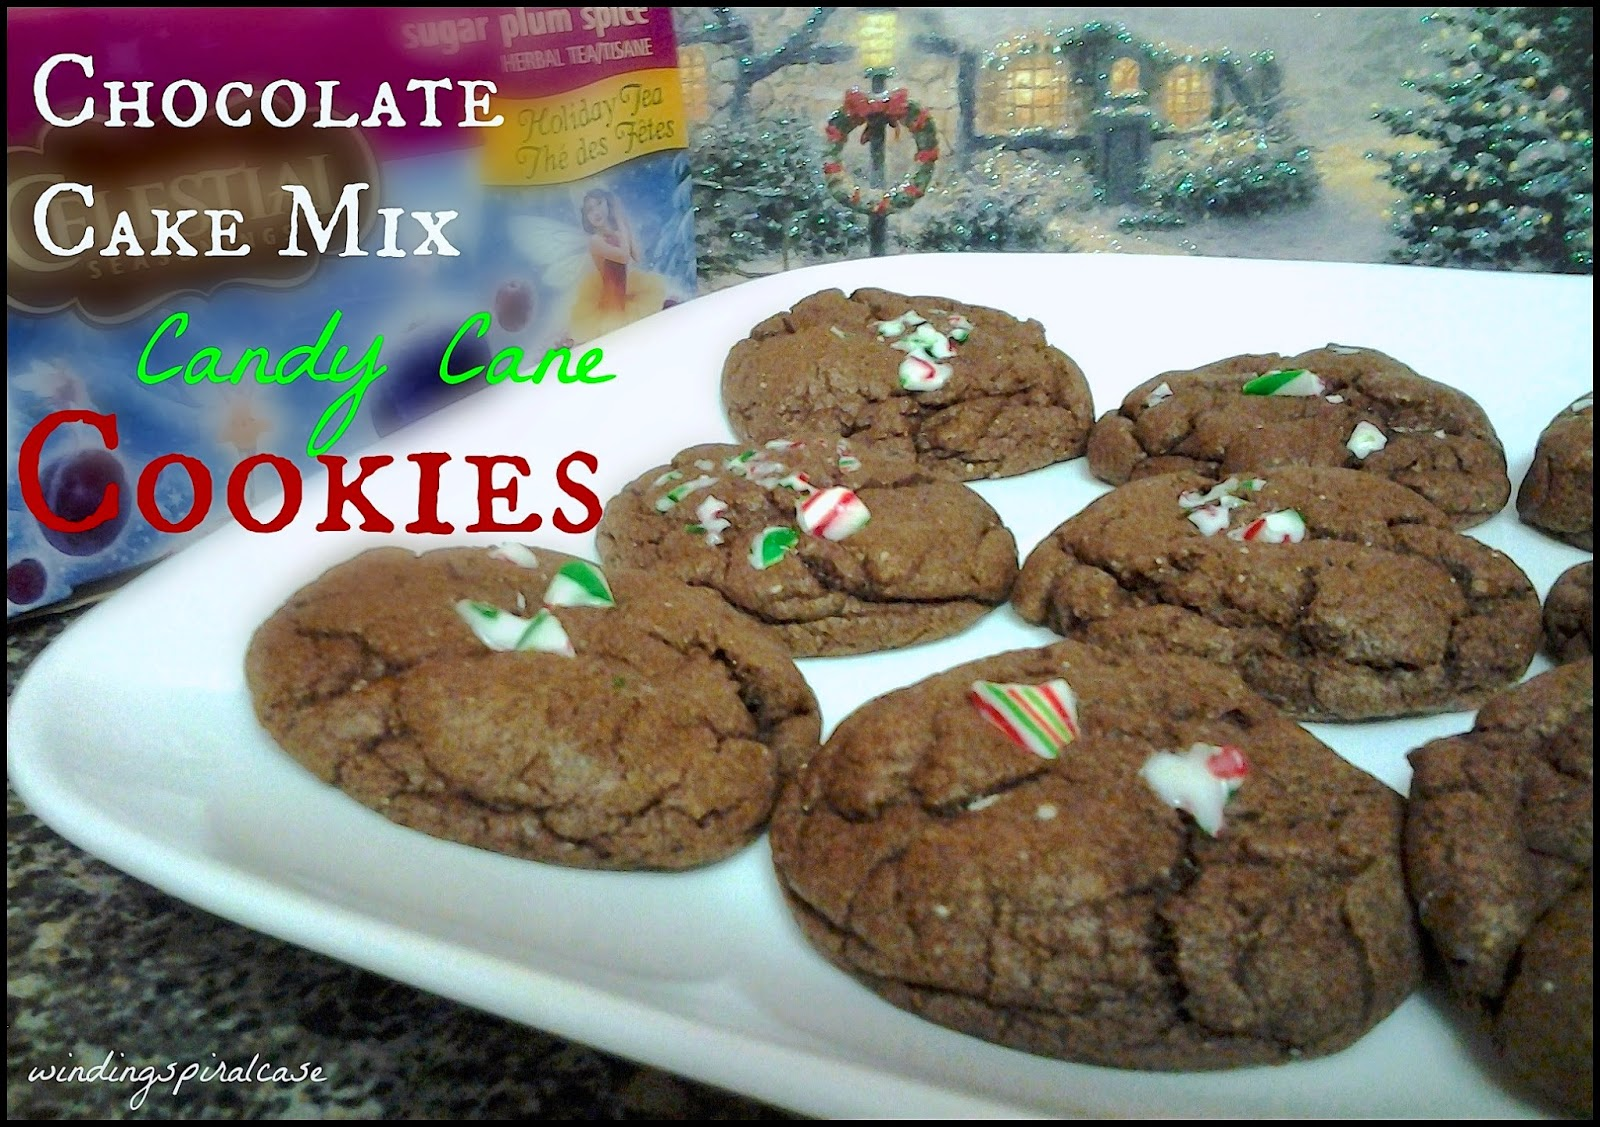 chocolate candy cane cake mix cookies recipe